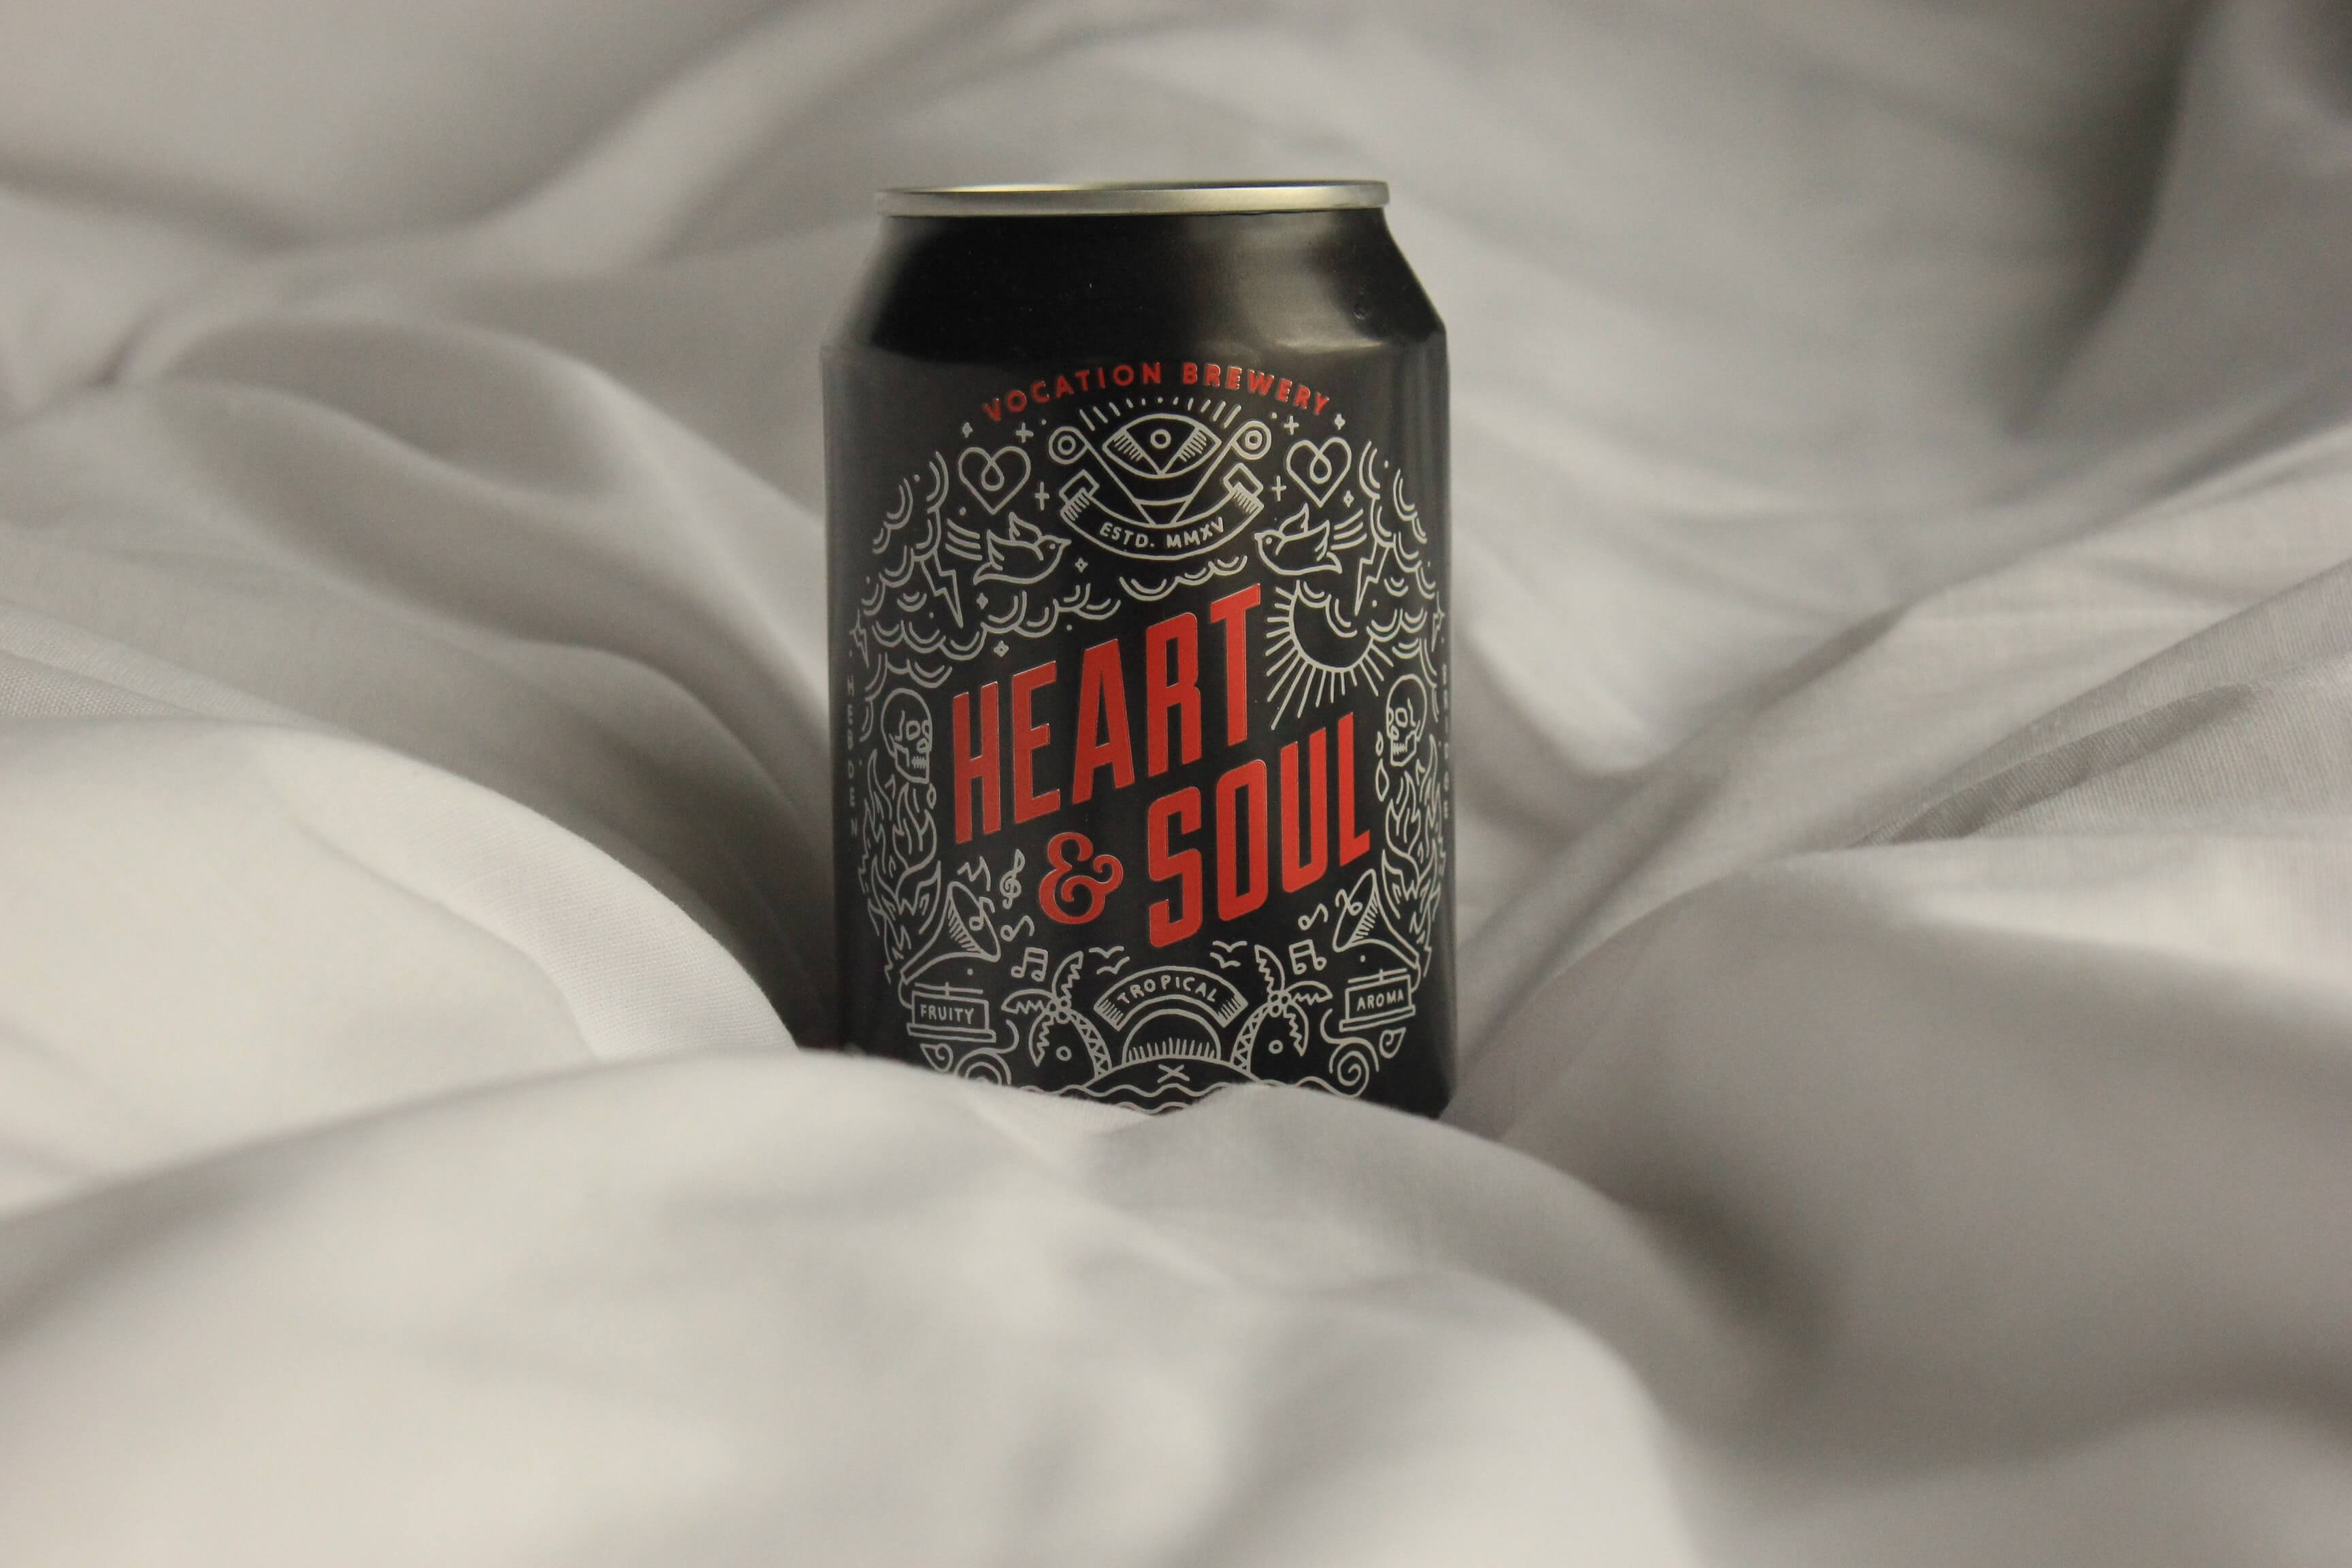 Photograph of a can of soda with the brand name Heart & Soul. The can is black, the logo and writing is red with white illustrations.